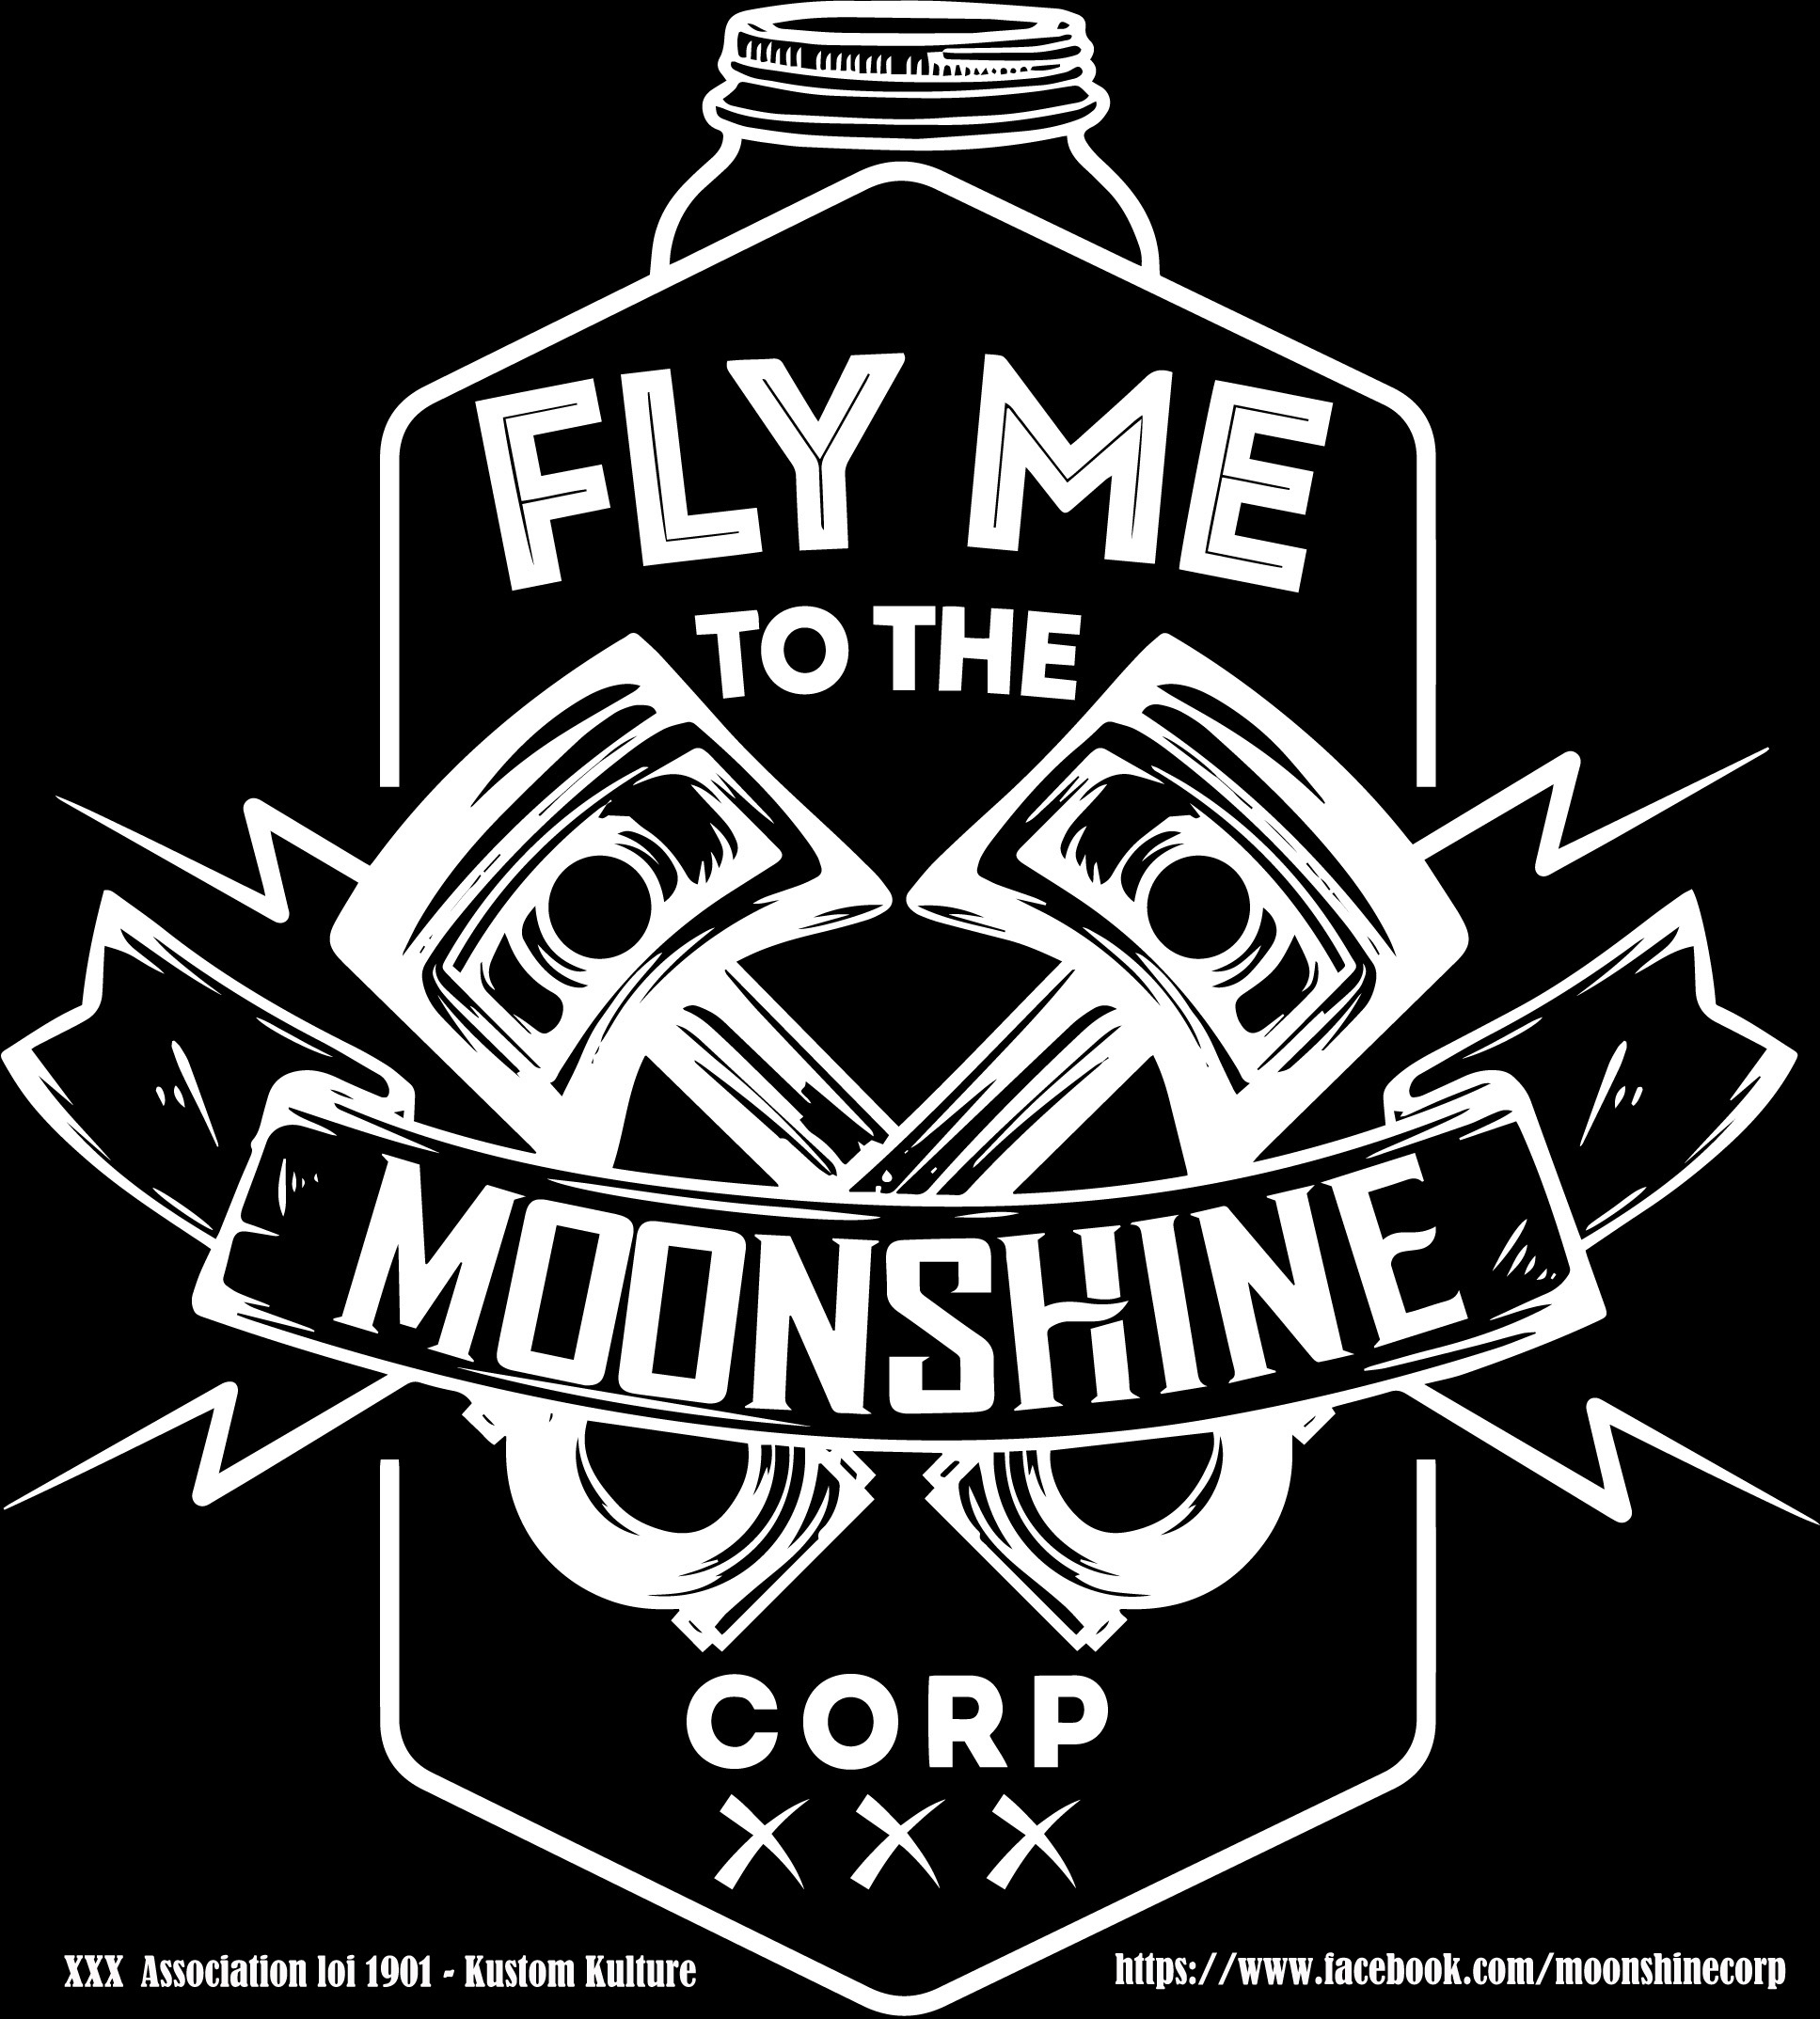 Association - Moonshine CORP